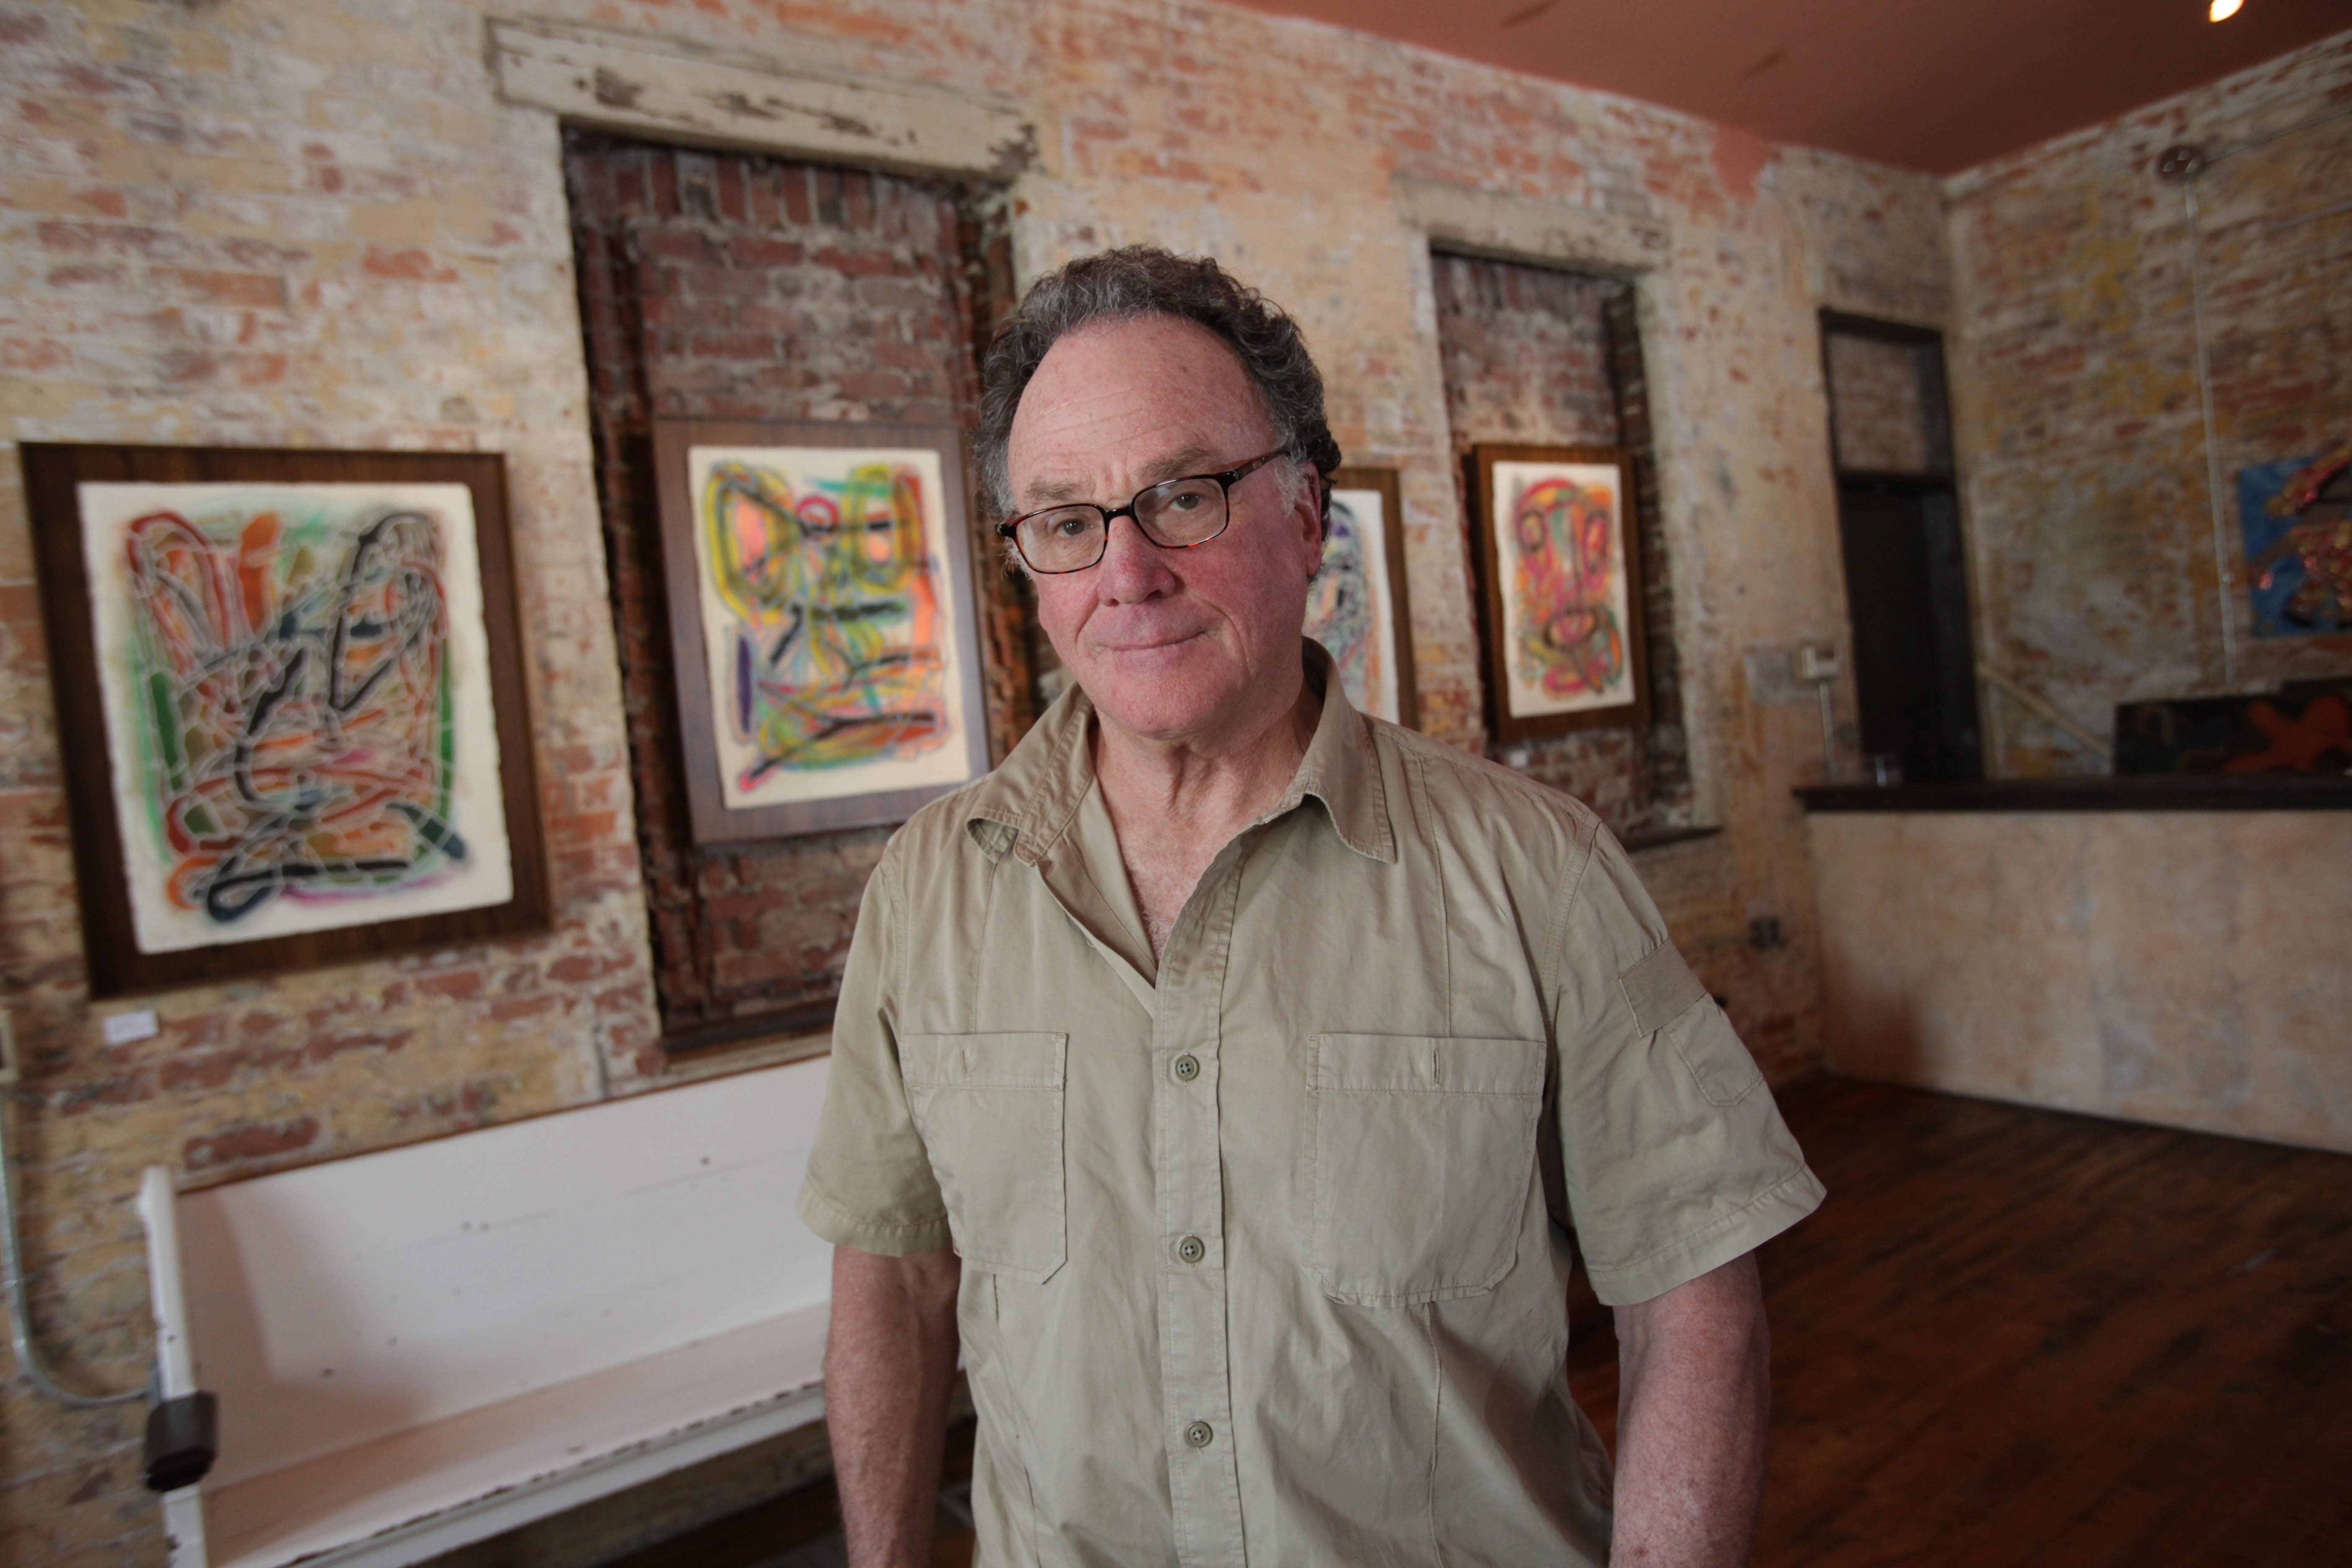 {photo for features story} Entrepreneur, restaurateur and arts supporter Mark Goldman in his new room in the Allen Street Hardware Cafe on Friday, May 13, 2011.    {Photo by Sharon Cantillon / Buffalo News }